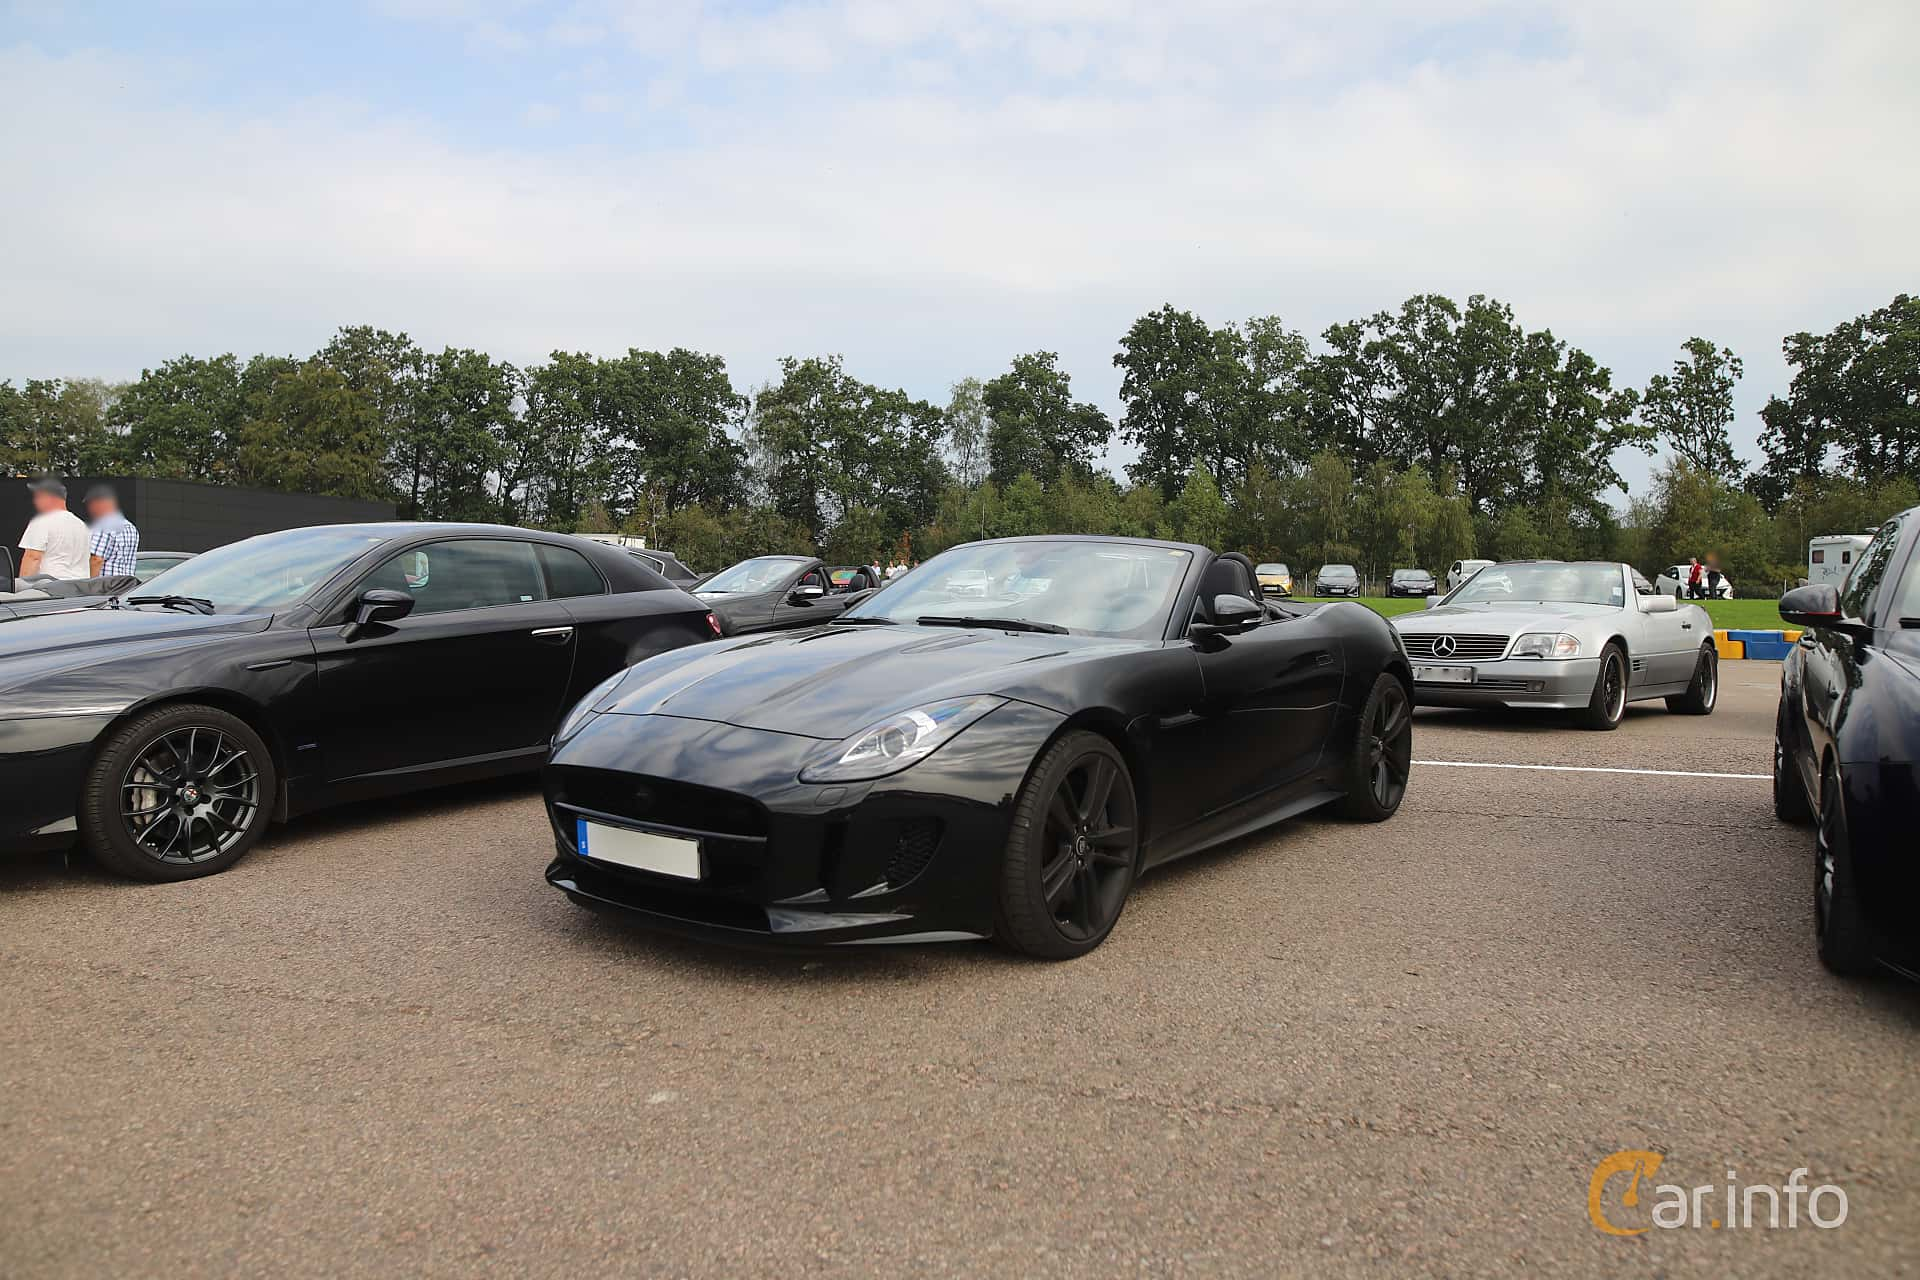 Jaguar F-Type V8 S Convertible  Automatic, 495hp, 2015 at Autoropa Racing day Knutstorp 2019